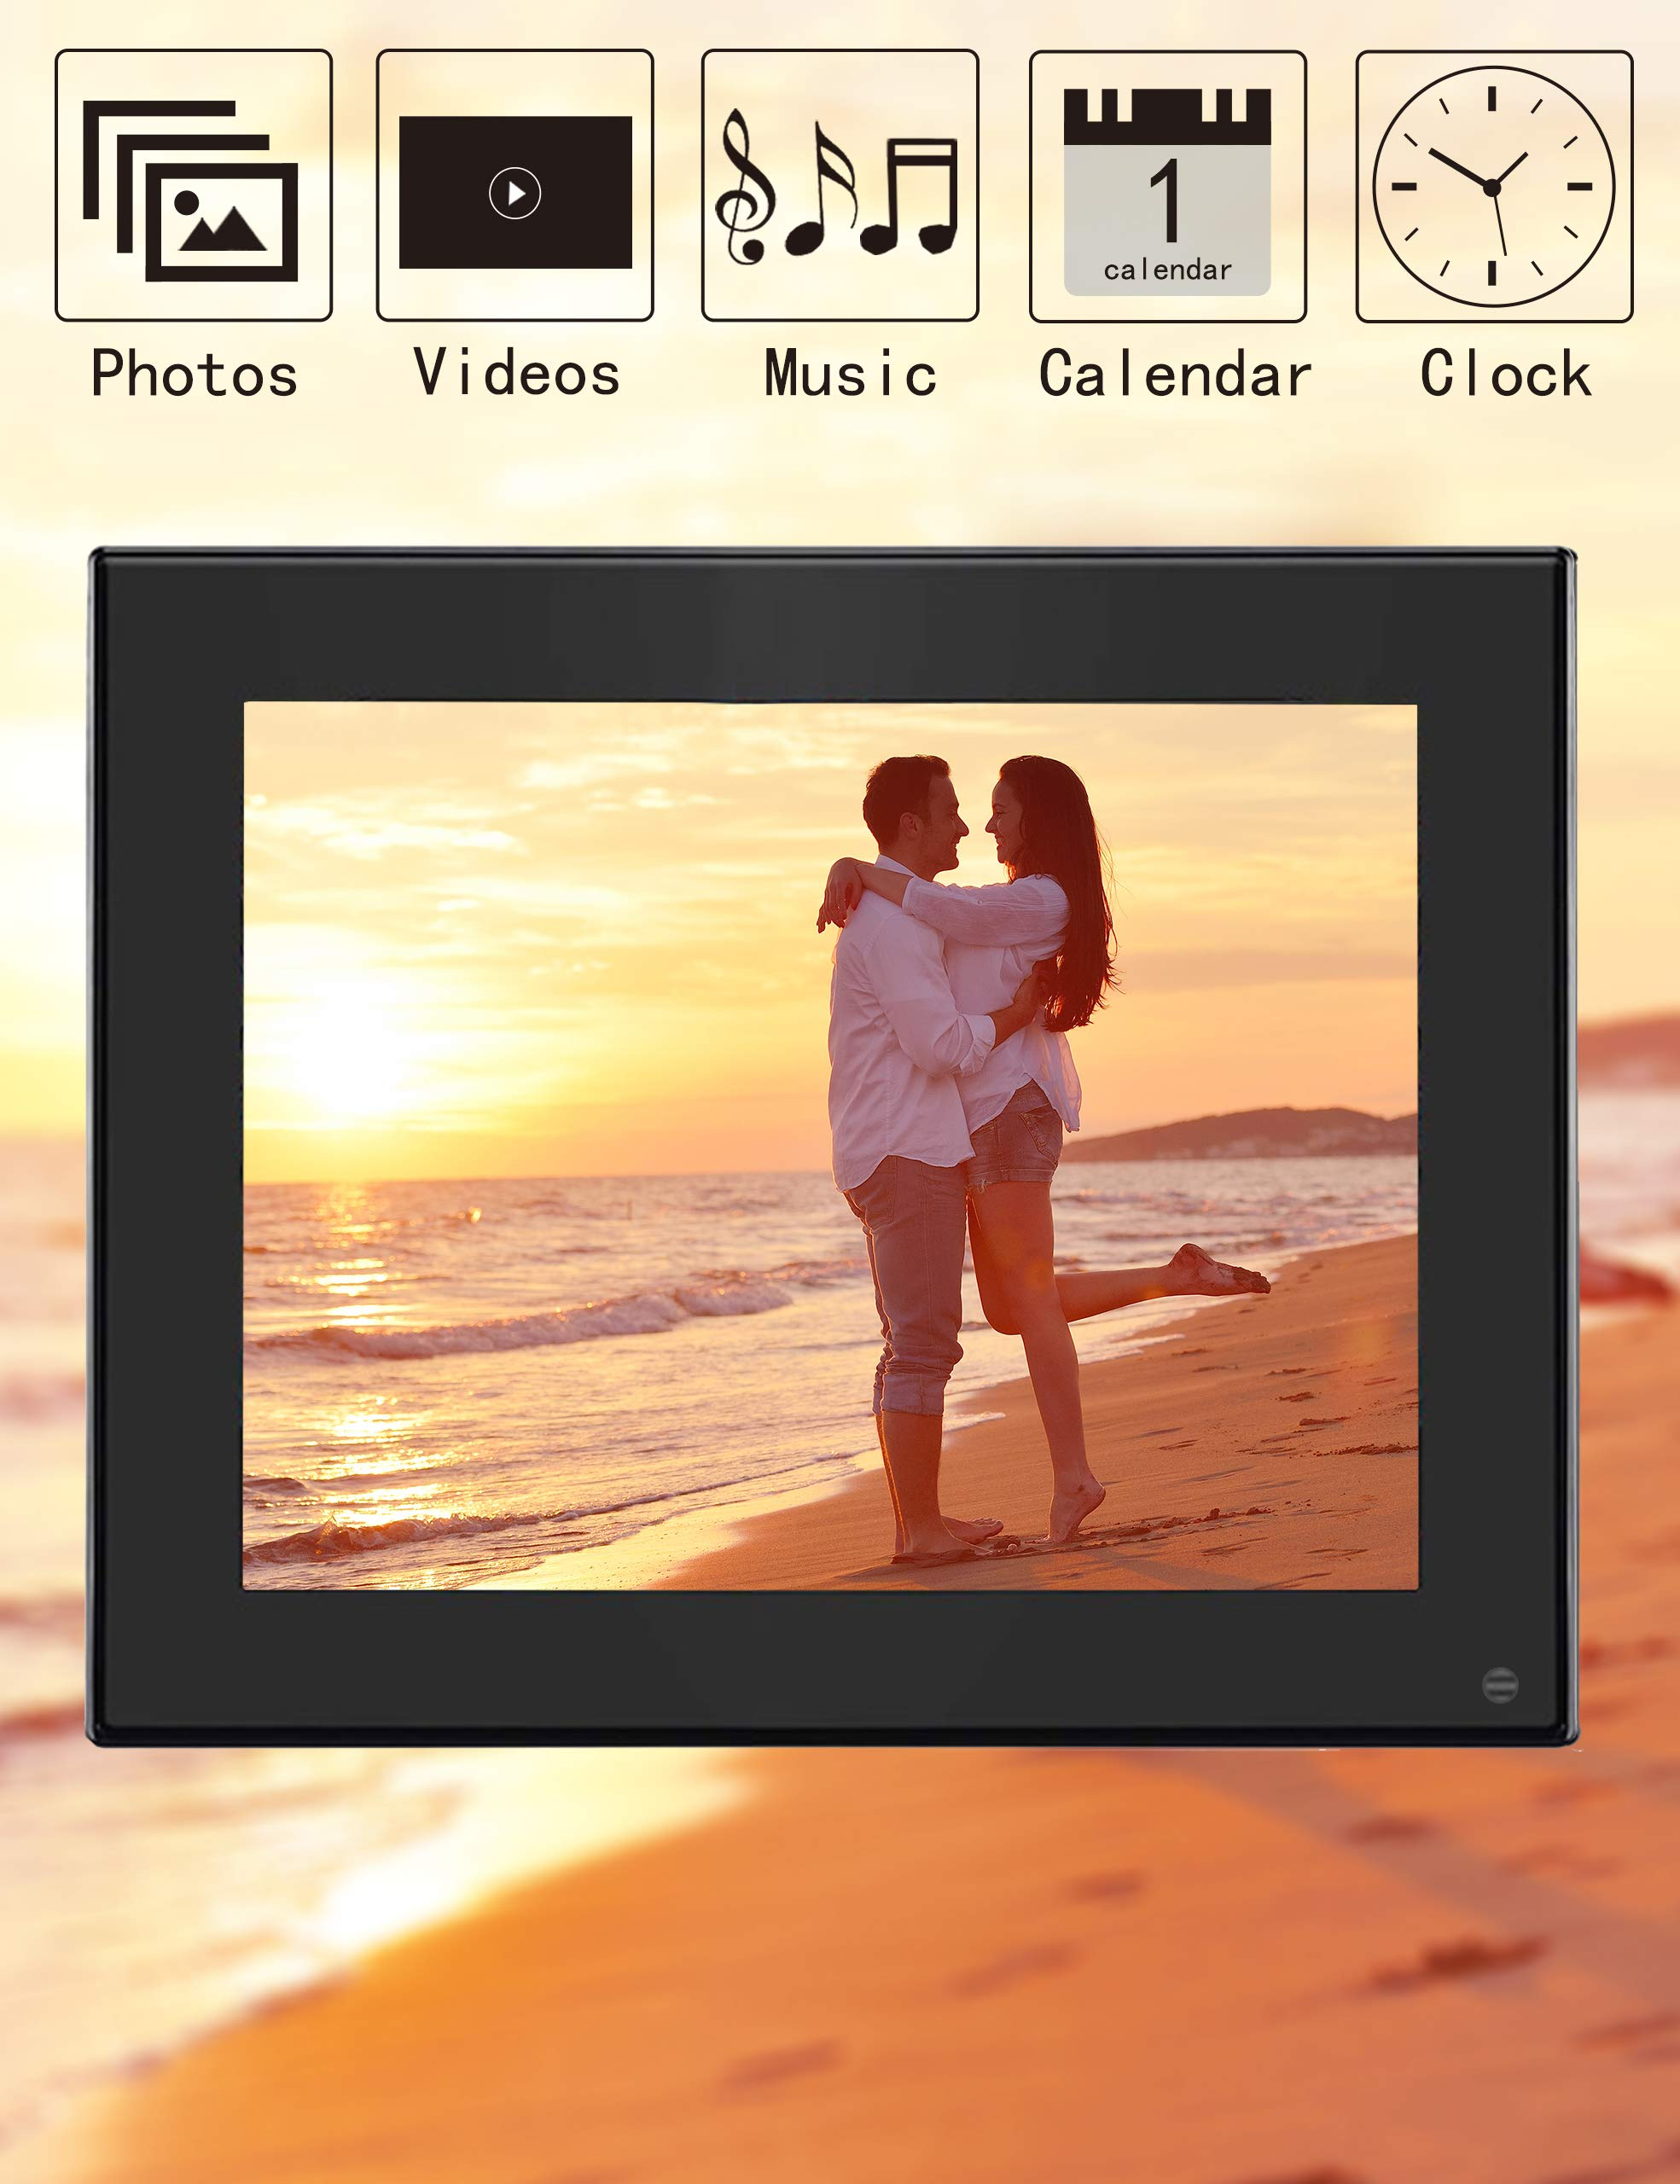 BSIMB Digital Photo Frame Digital Picture Frame 8 Inch 1024×768 Resolution Display with Calendar,Music,Video and USB,SD Card and Remote Control(M03 Black) by Bsimb (Image #3)